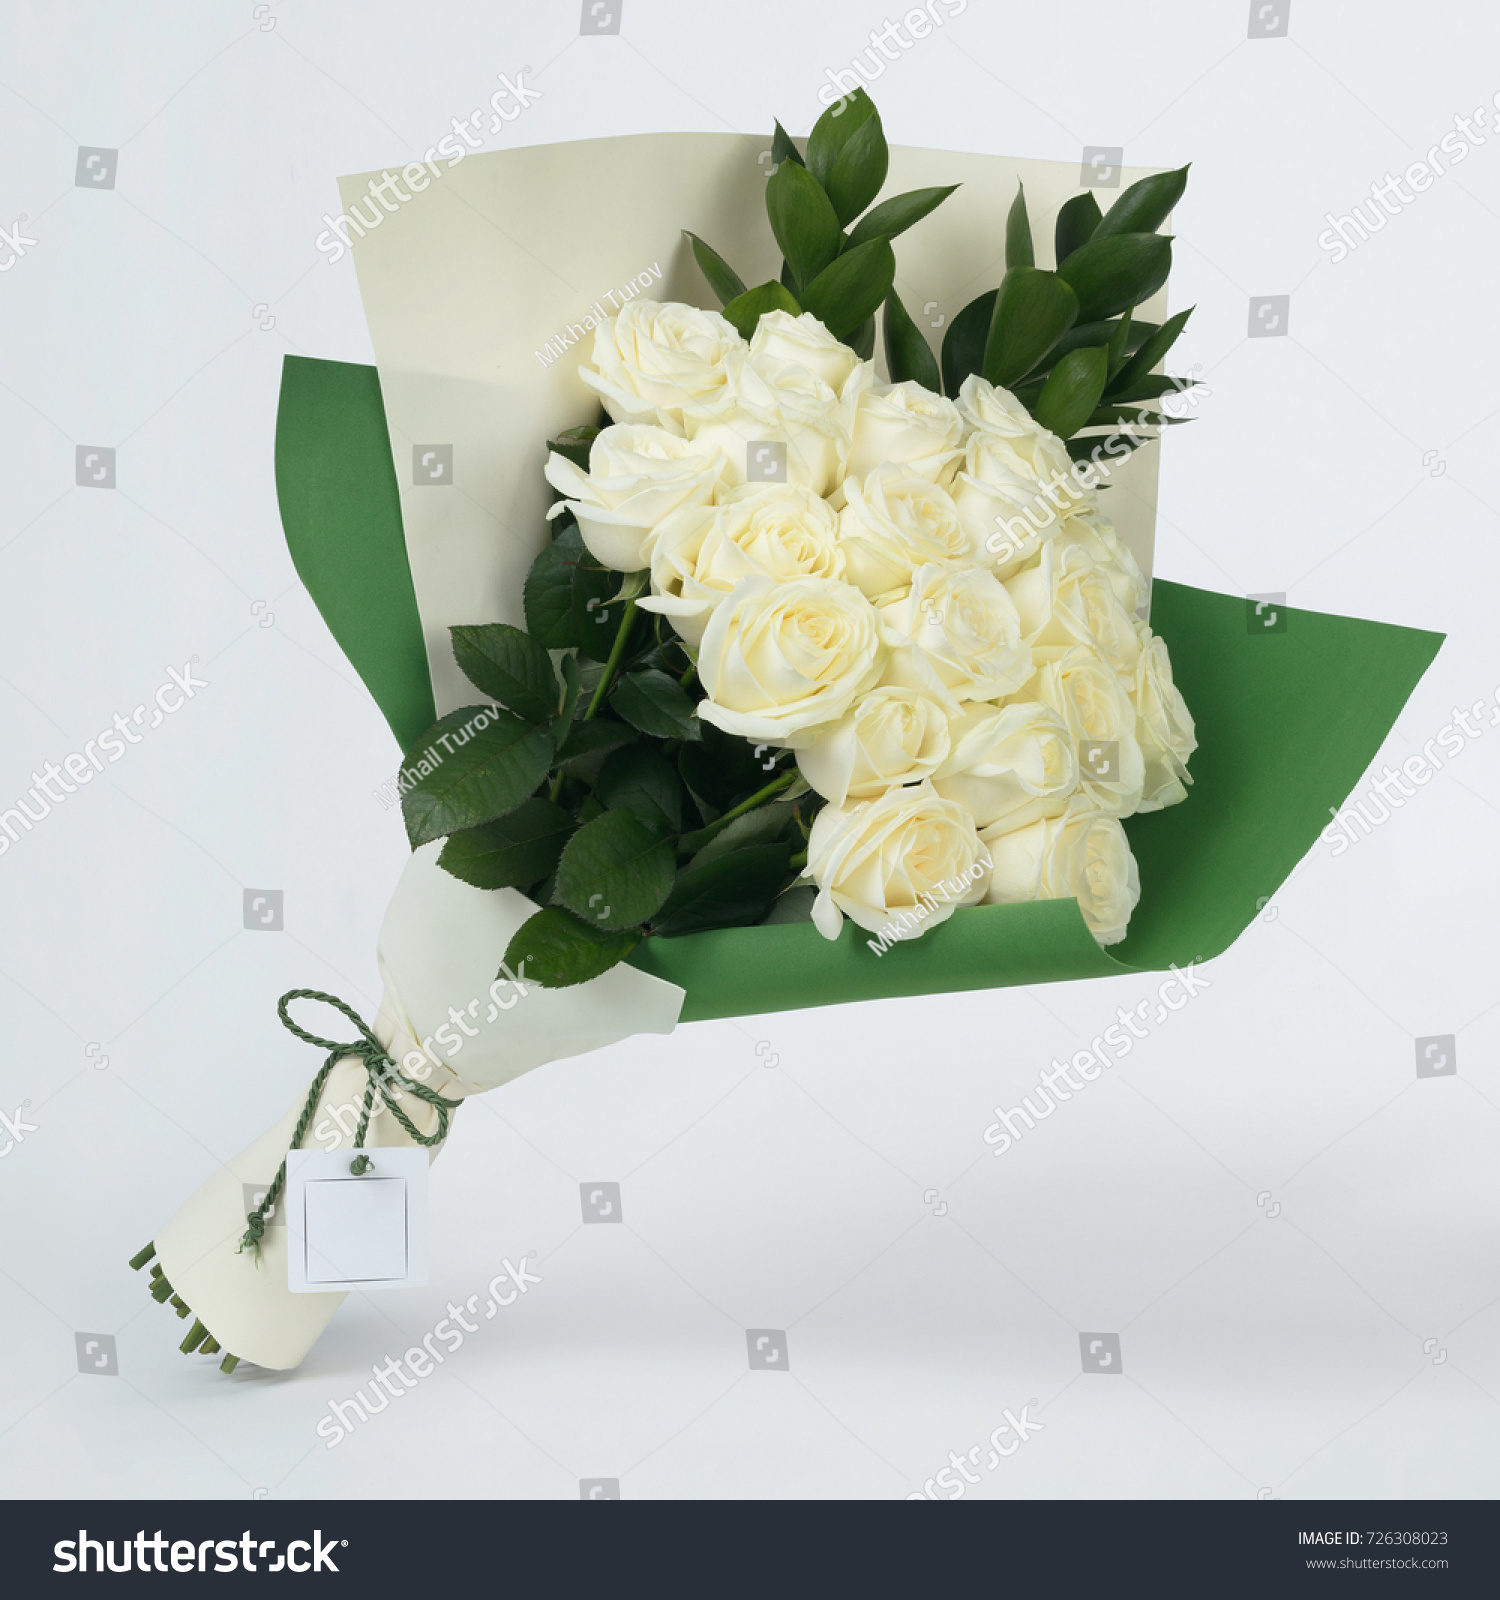 Bouquet beautiful flowers white roses colorful stock photo edit now bouquet of beautiful flowers of white roses in colorful green packaging on a gray background izmirmasajfo